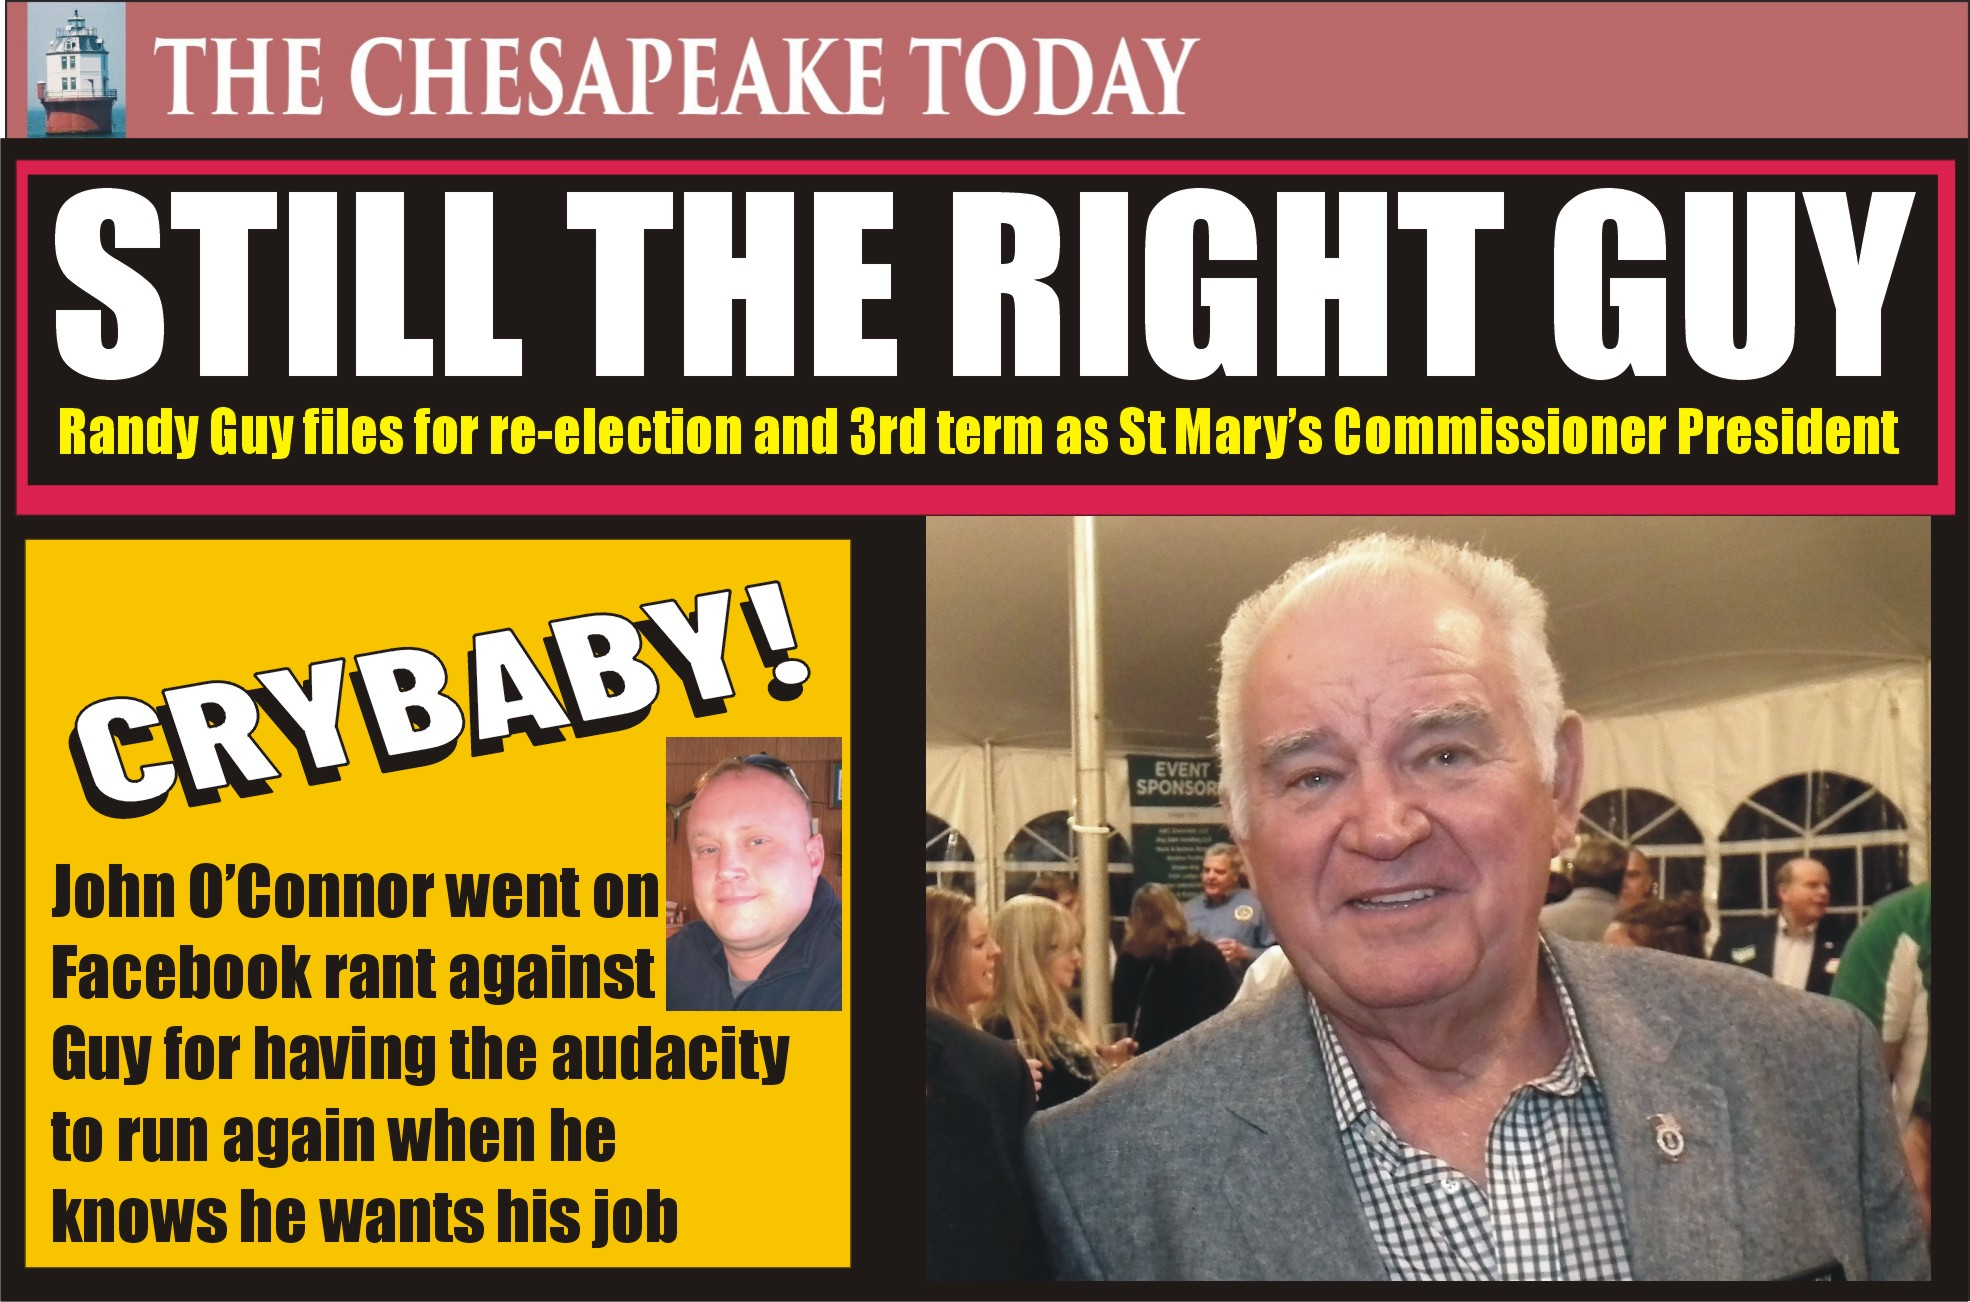 ELECTION 2022: St. Mary's County Commissioner President Randy Guy filed for a third term